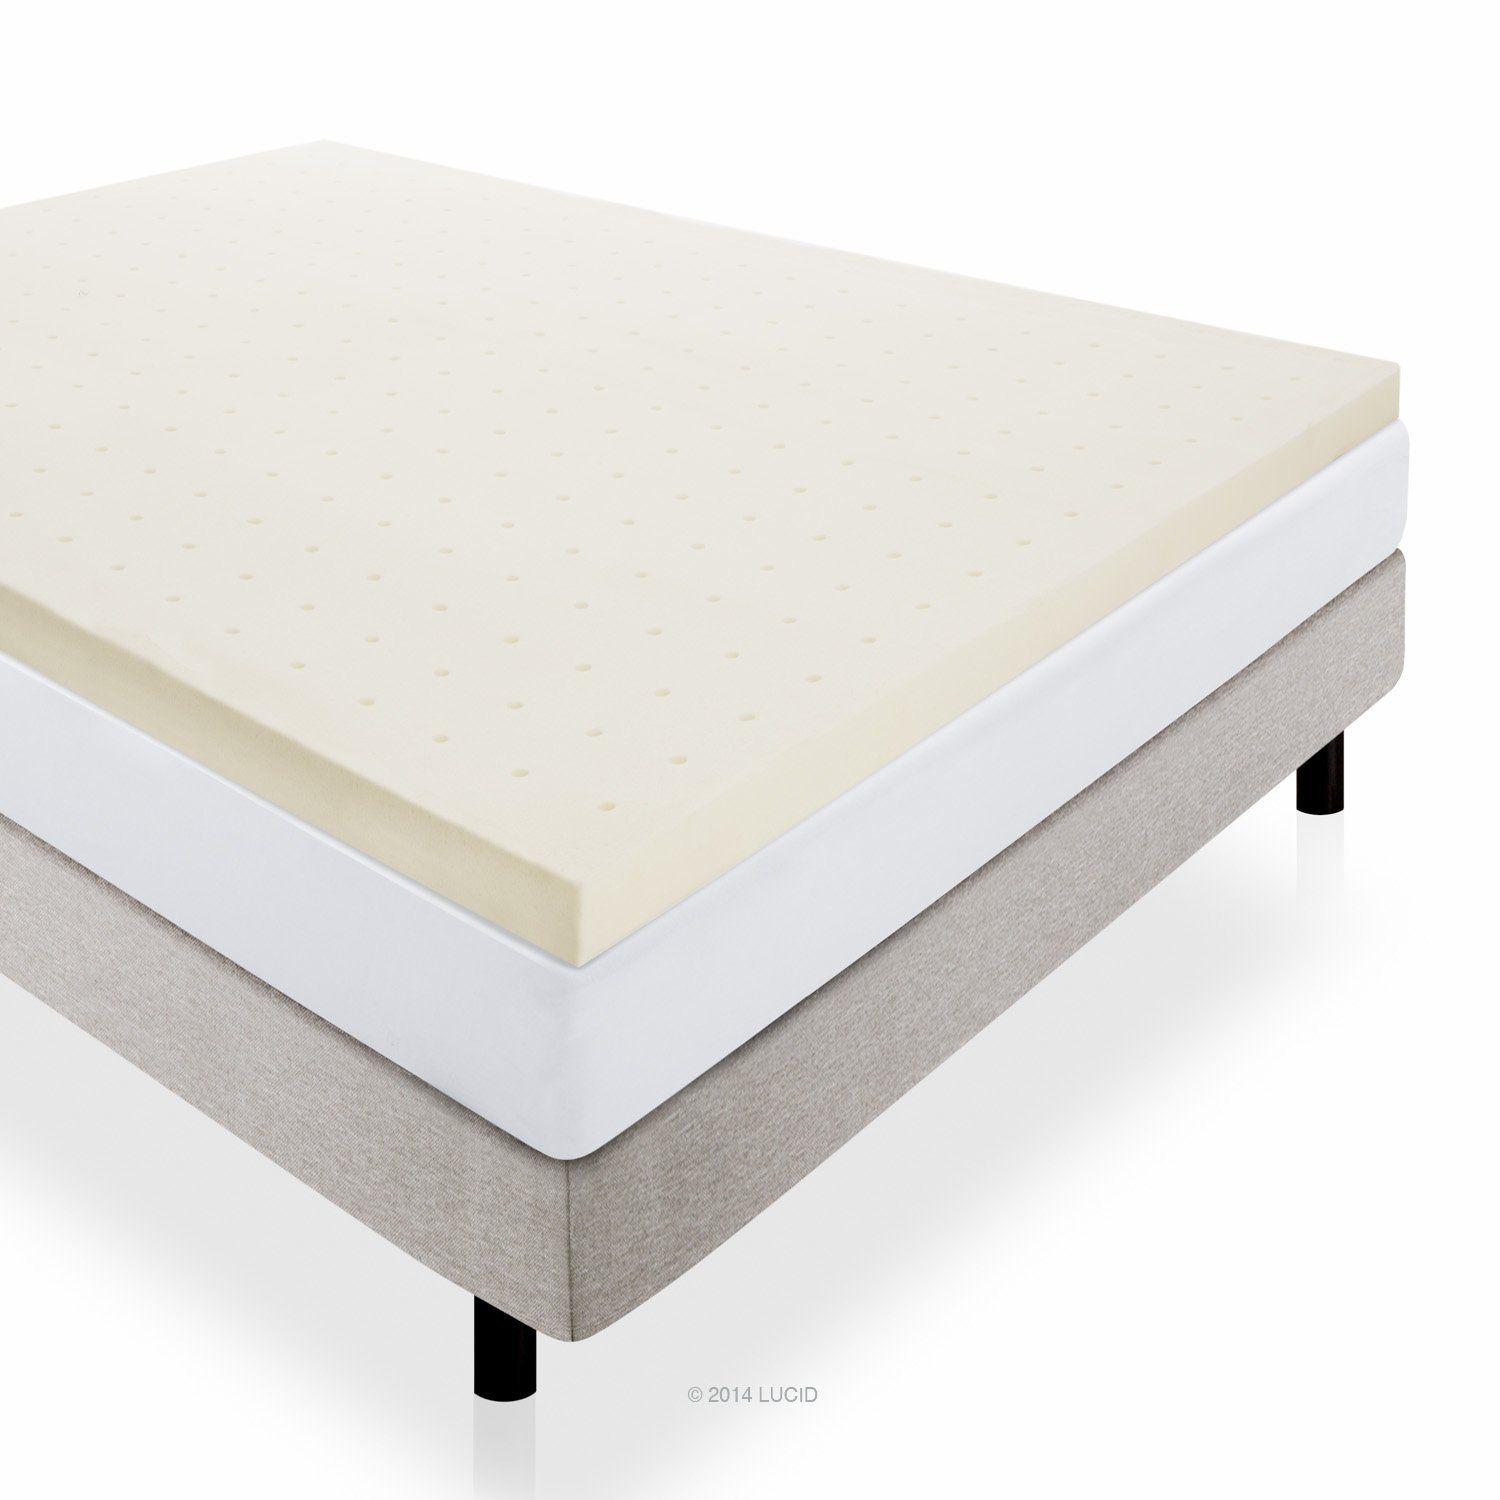 Medium image of best mattress protector for memory foam